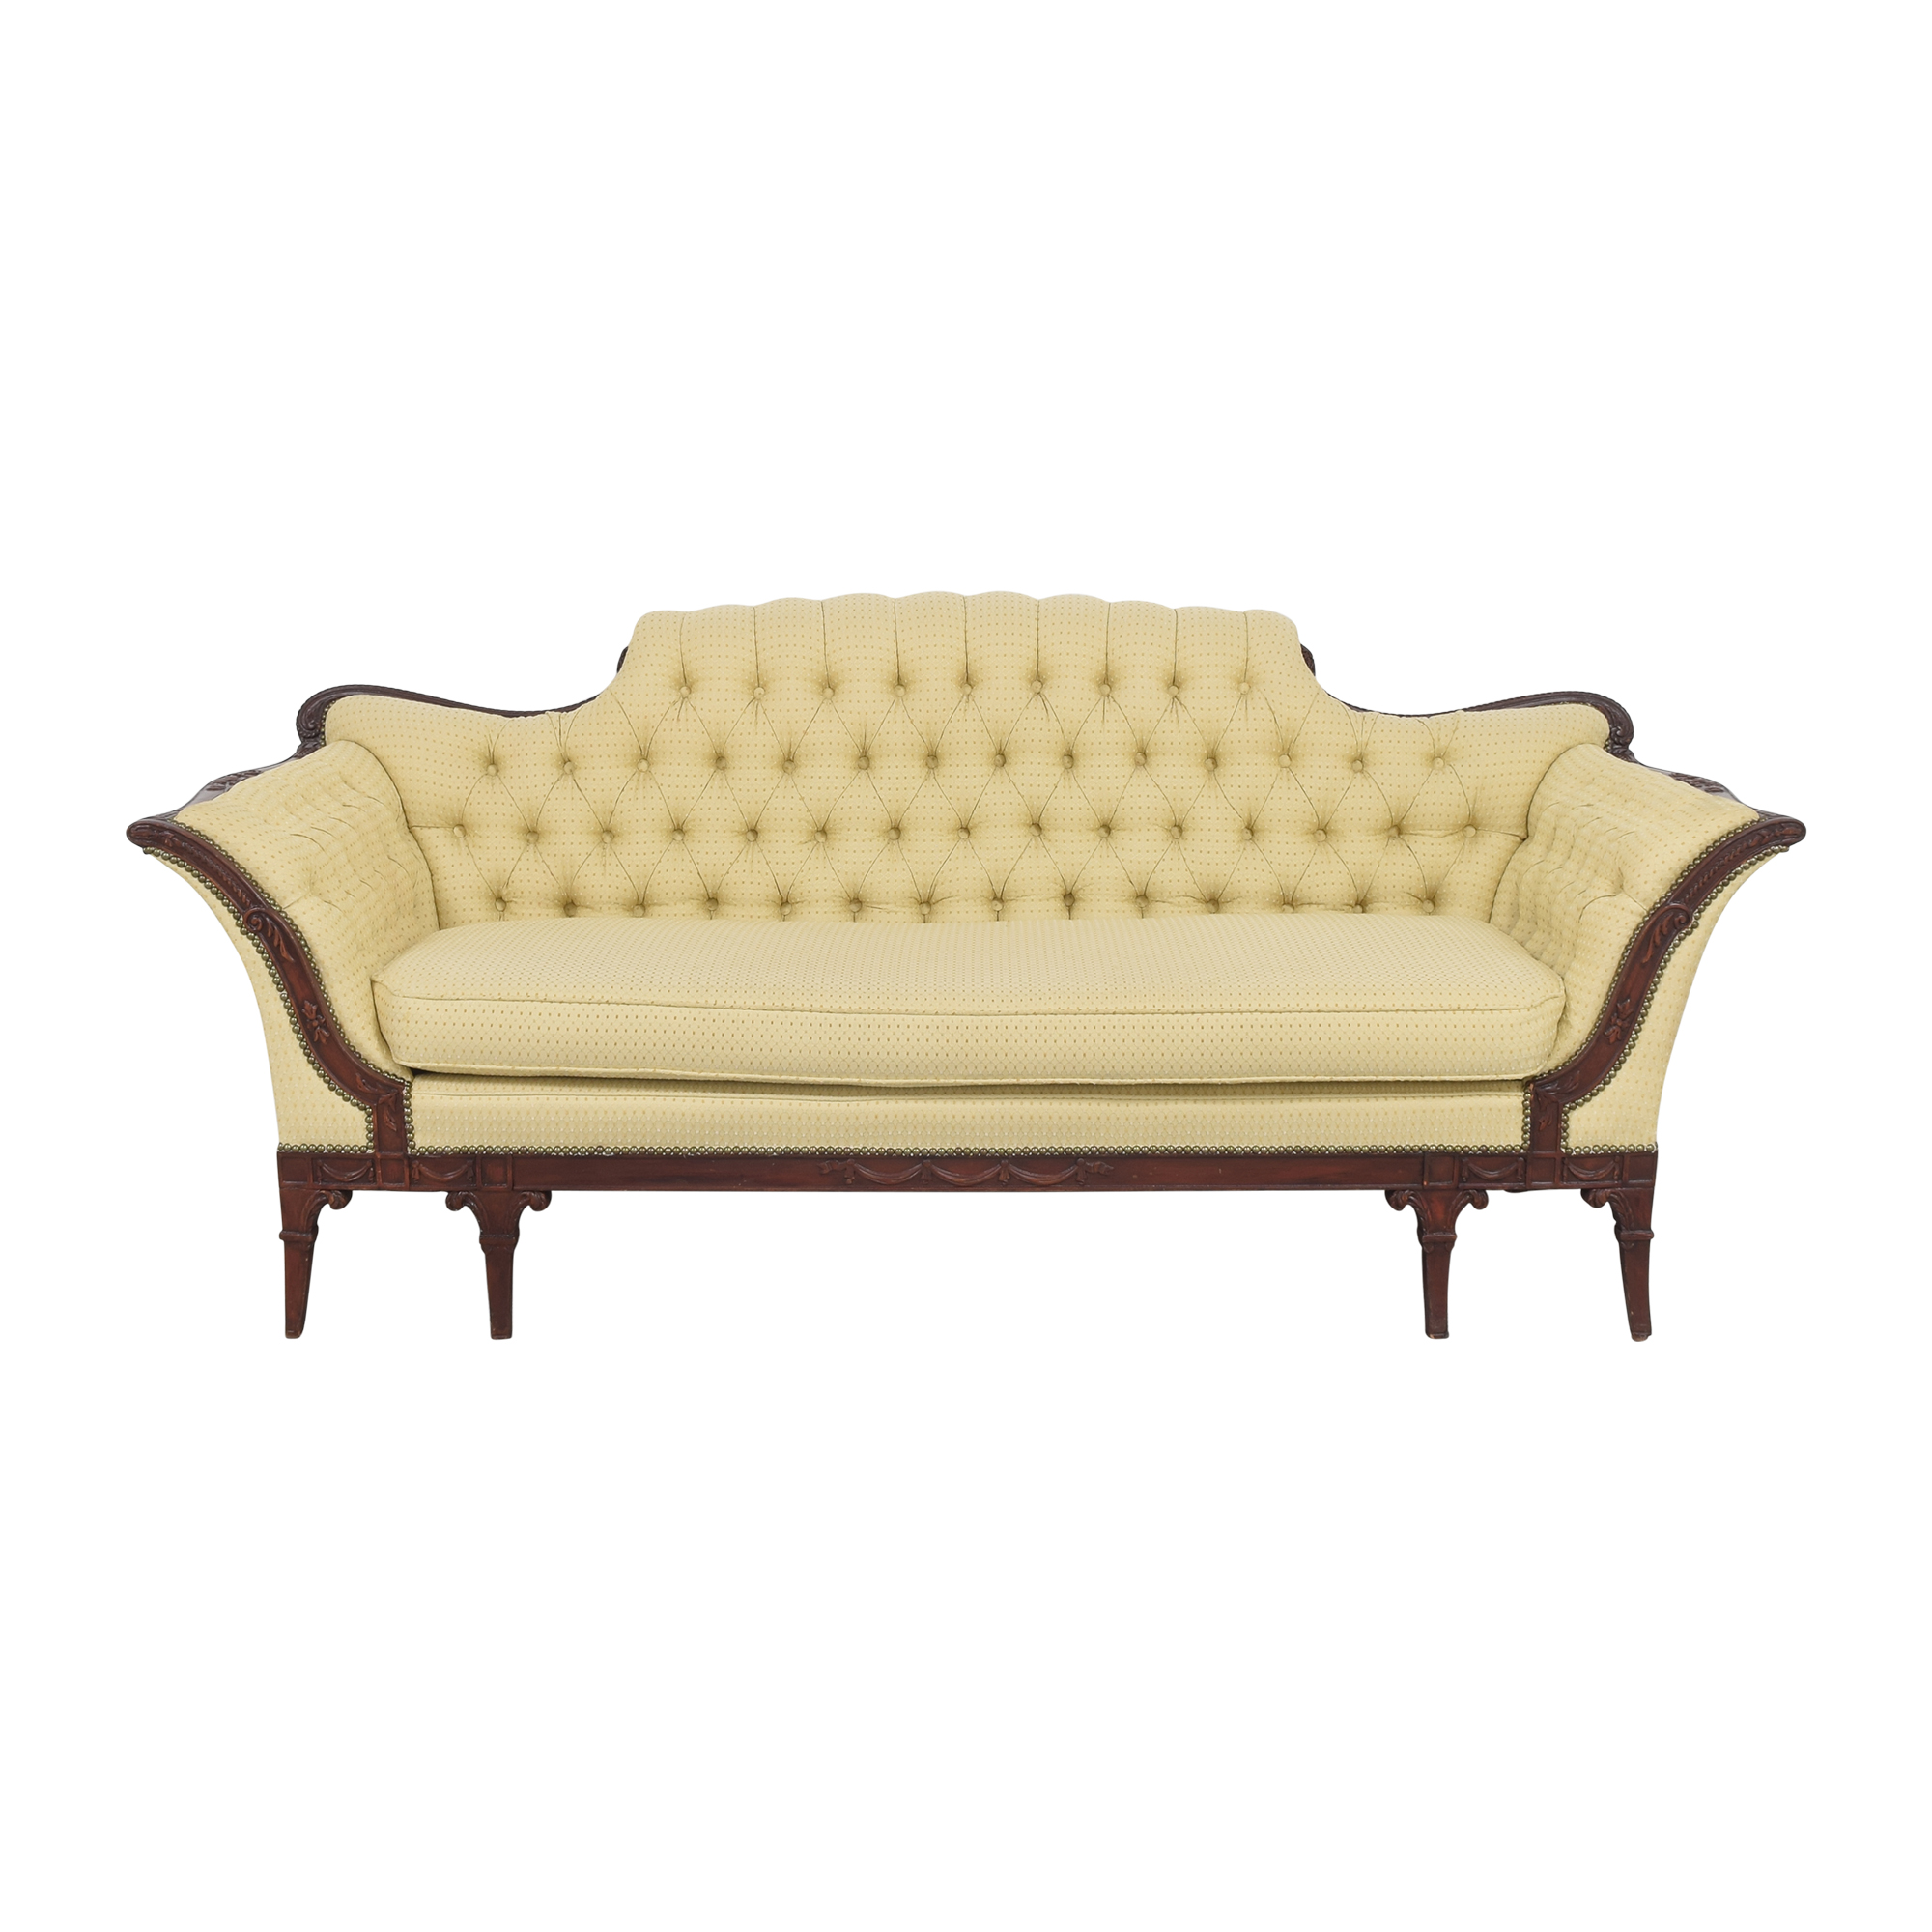 Vintage Tufted Camelback Sofa discount